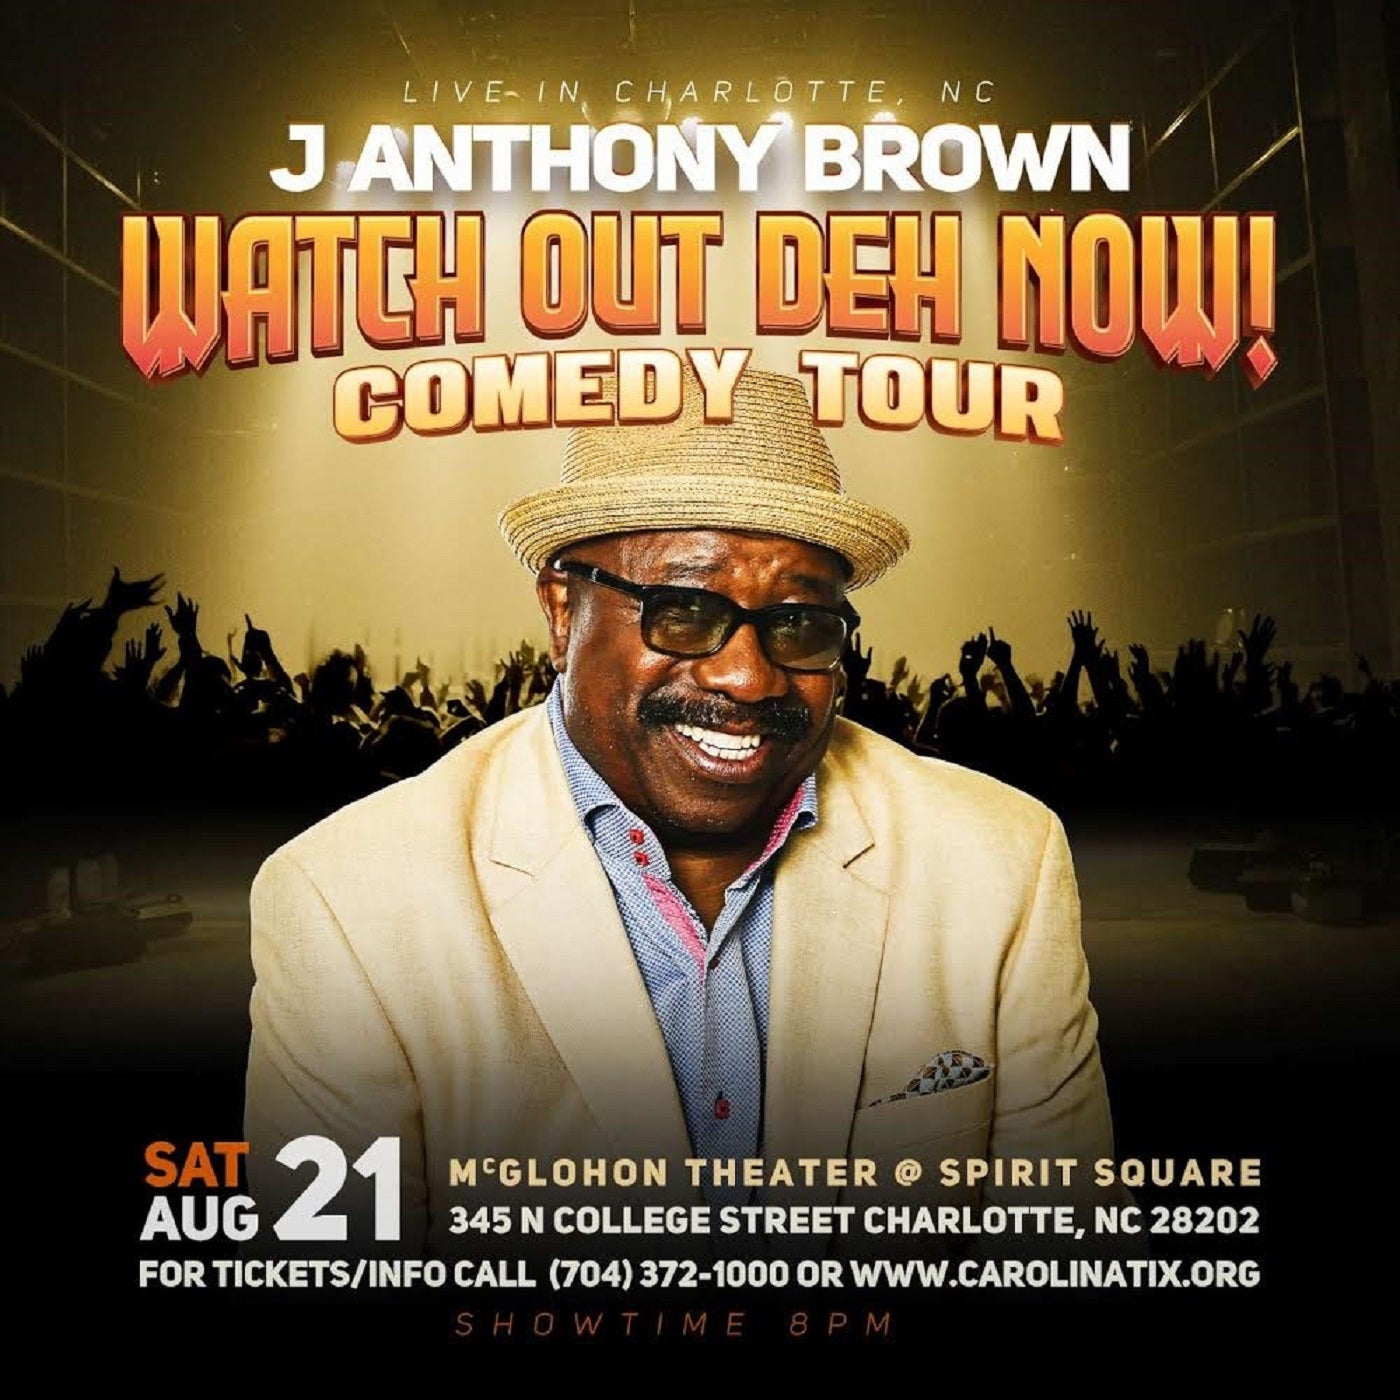 J Anthony Brown Watch Out Deh Now!